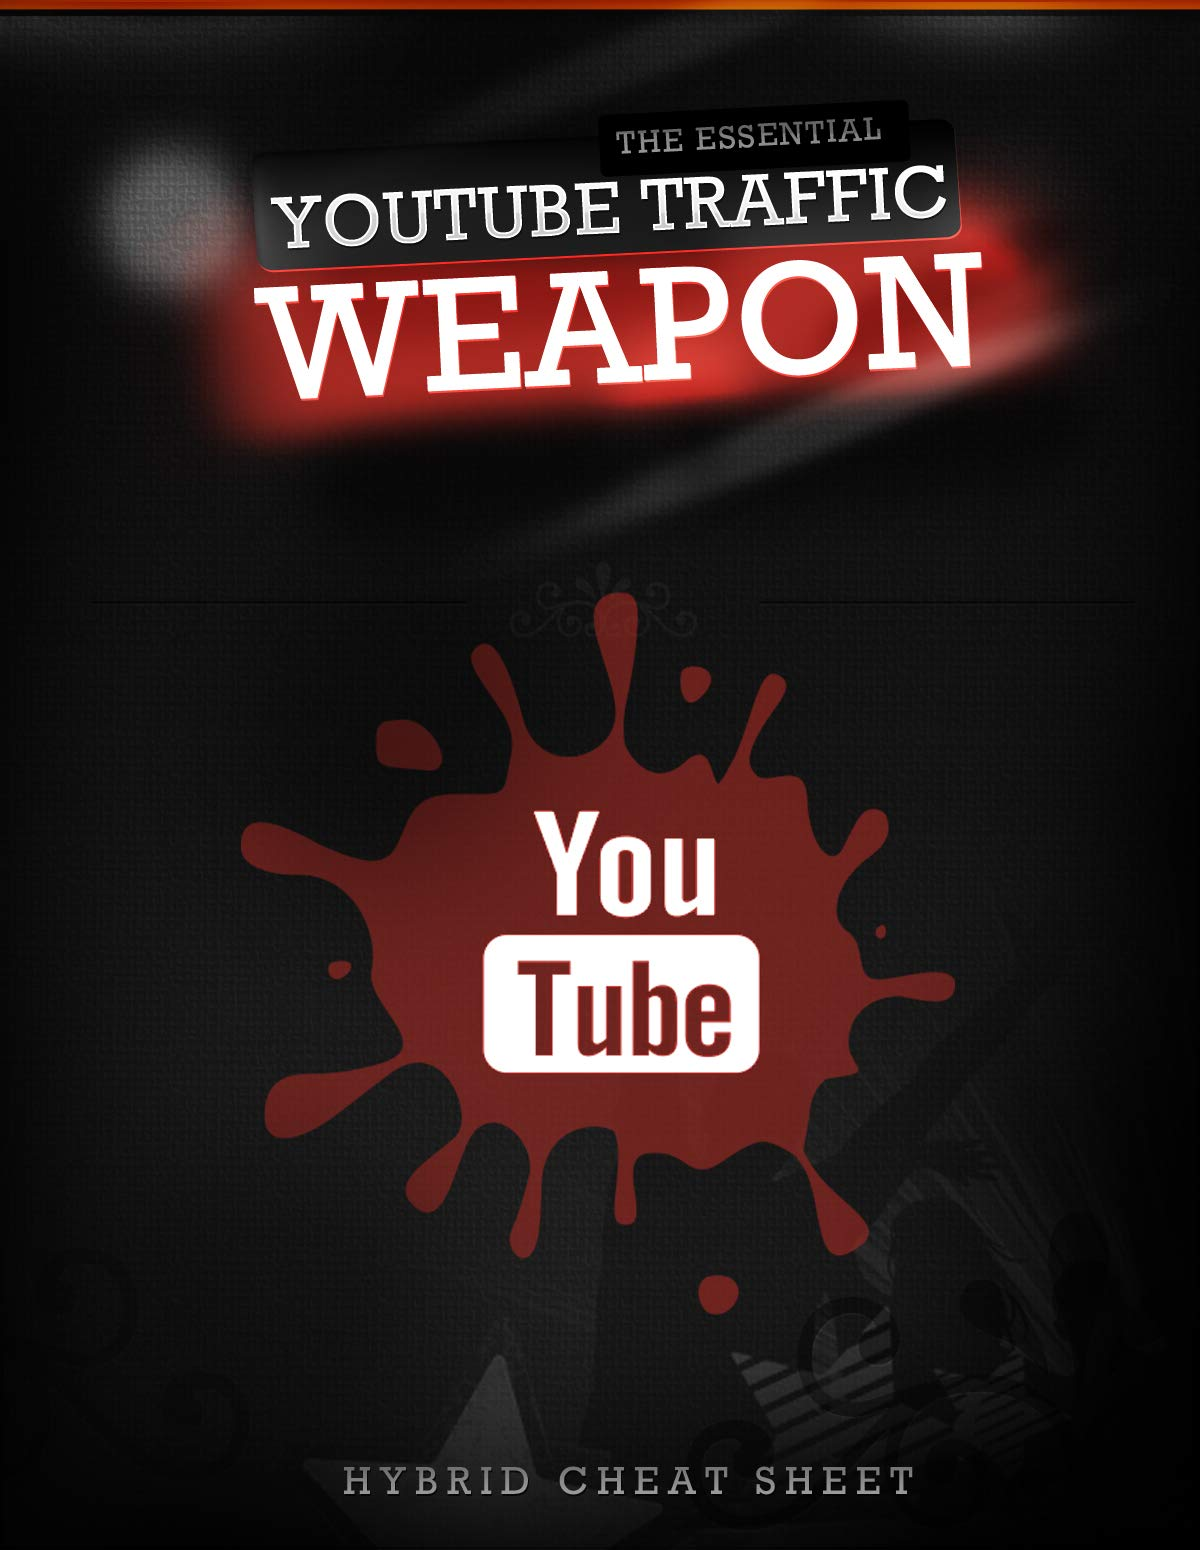 Youtub-traffic-weapon